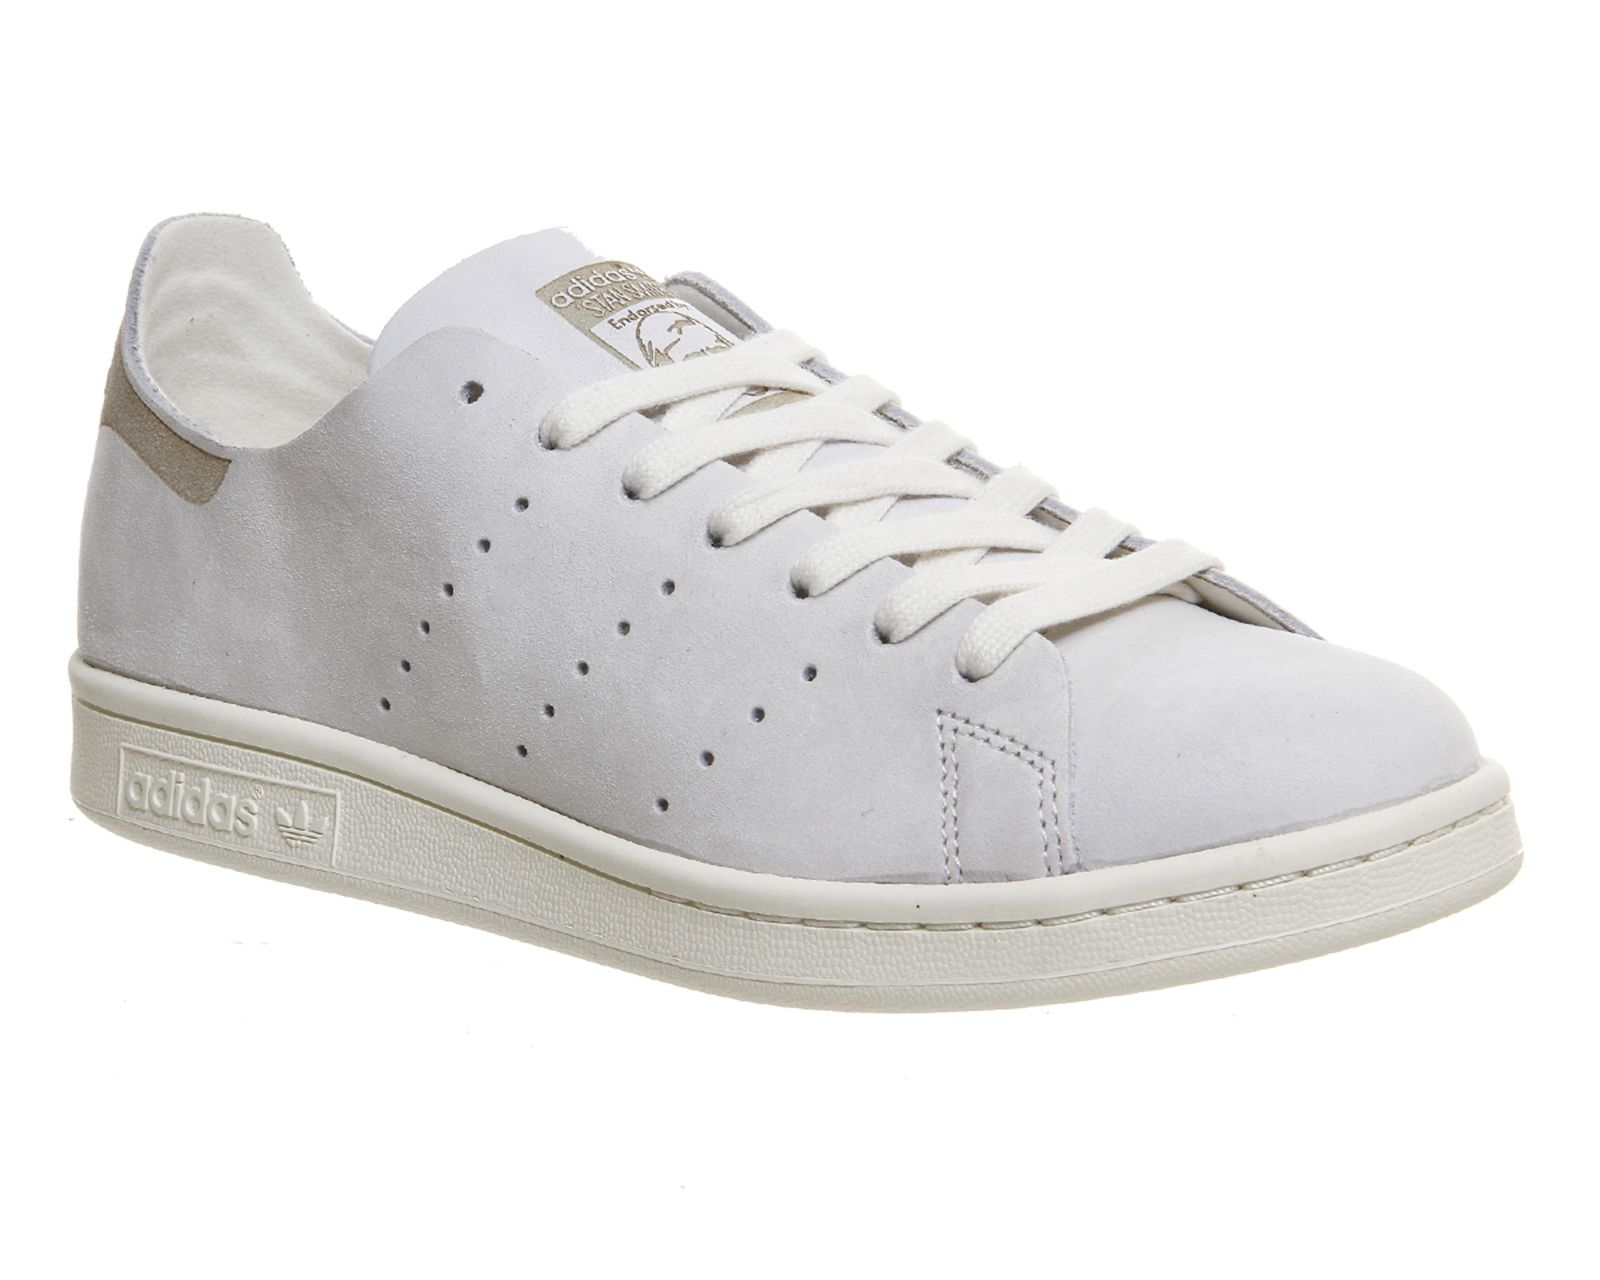 Adidas Stan Smith Decon Off White Off White Off White Hers trainers